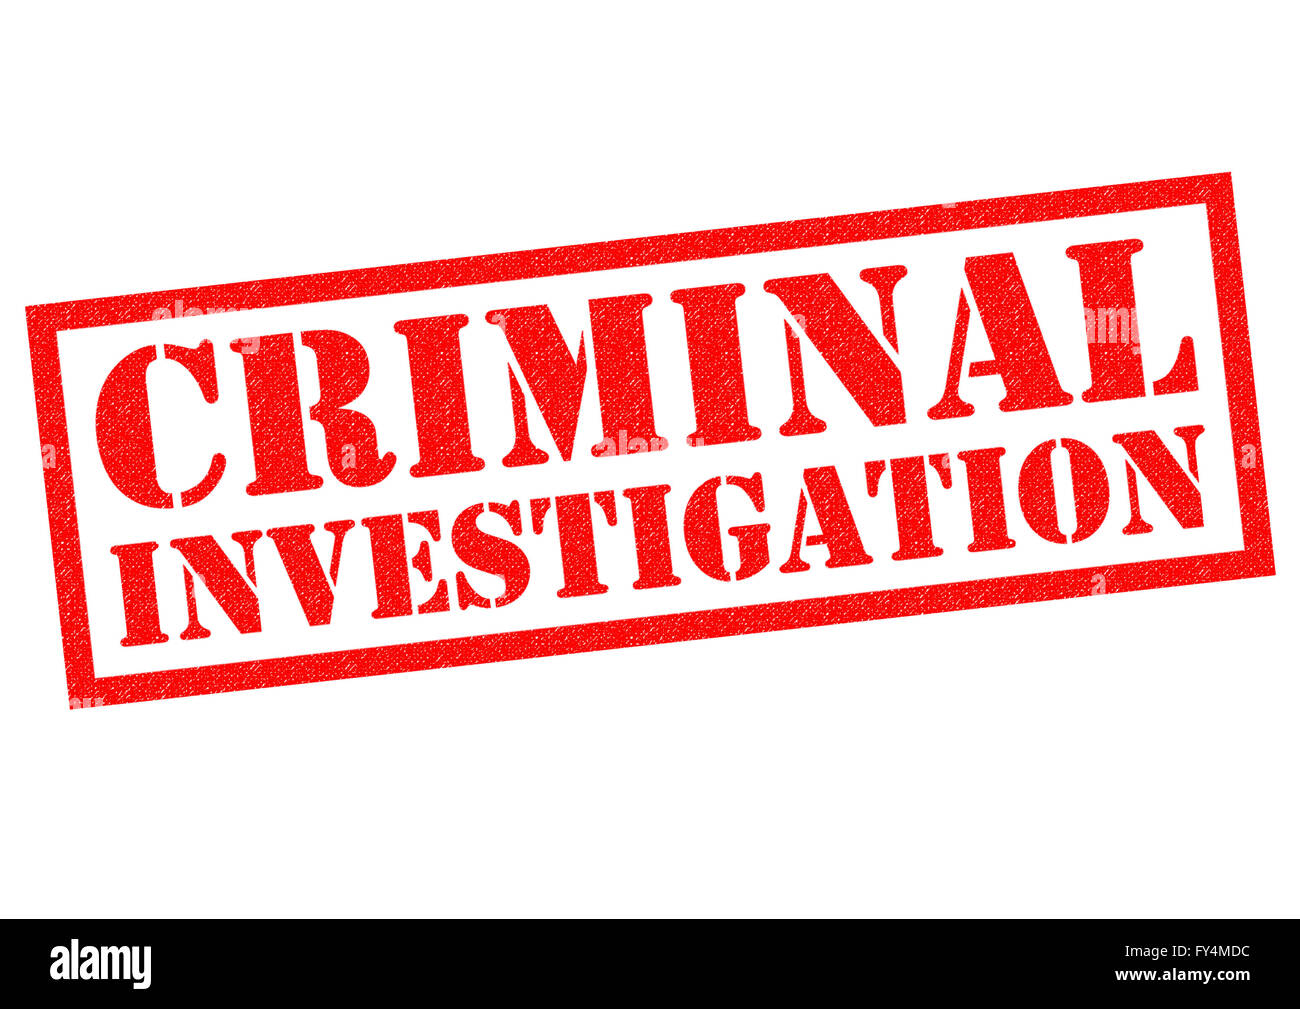 CRIMINAL INVESTIGATION red Rubber Stamp over a white background. - Stock Image